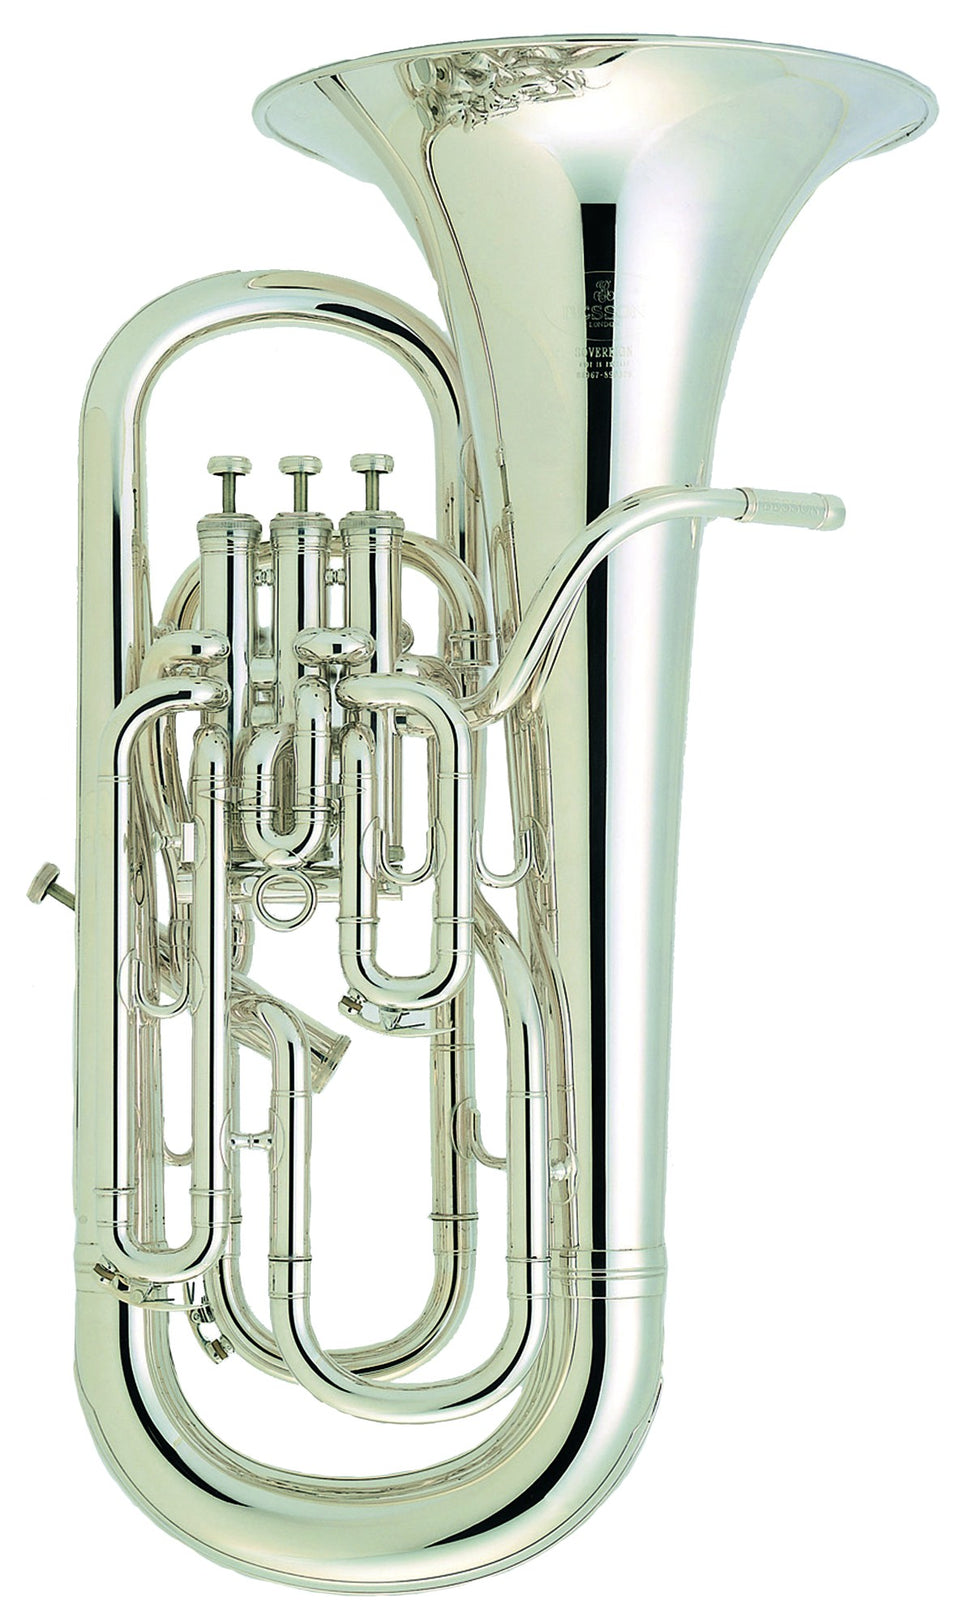 Besson BE967-2-0 B-Flat Euphonium - Silver Plated Sovereign Series